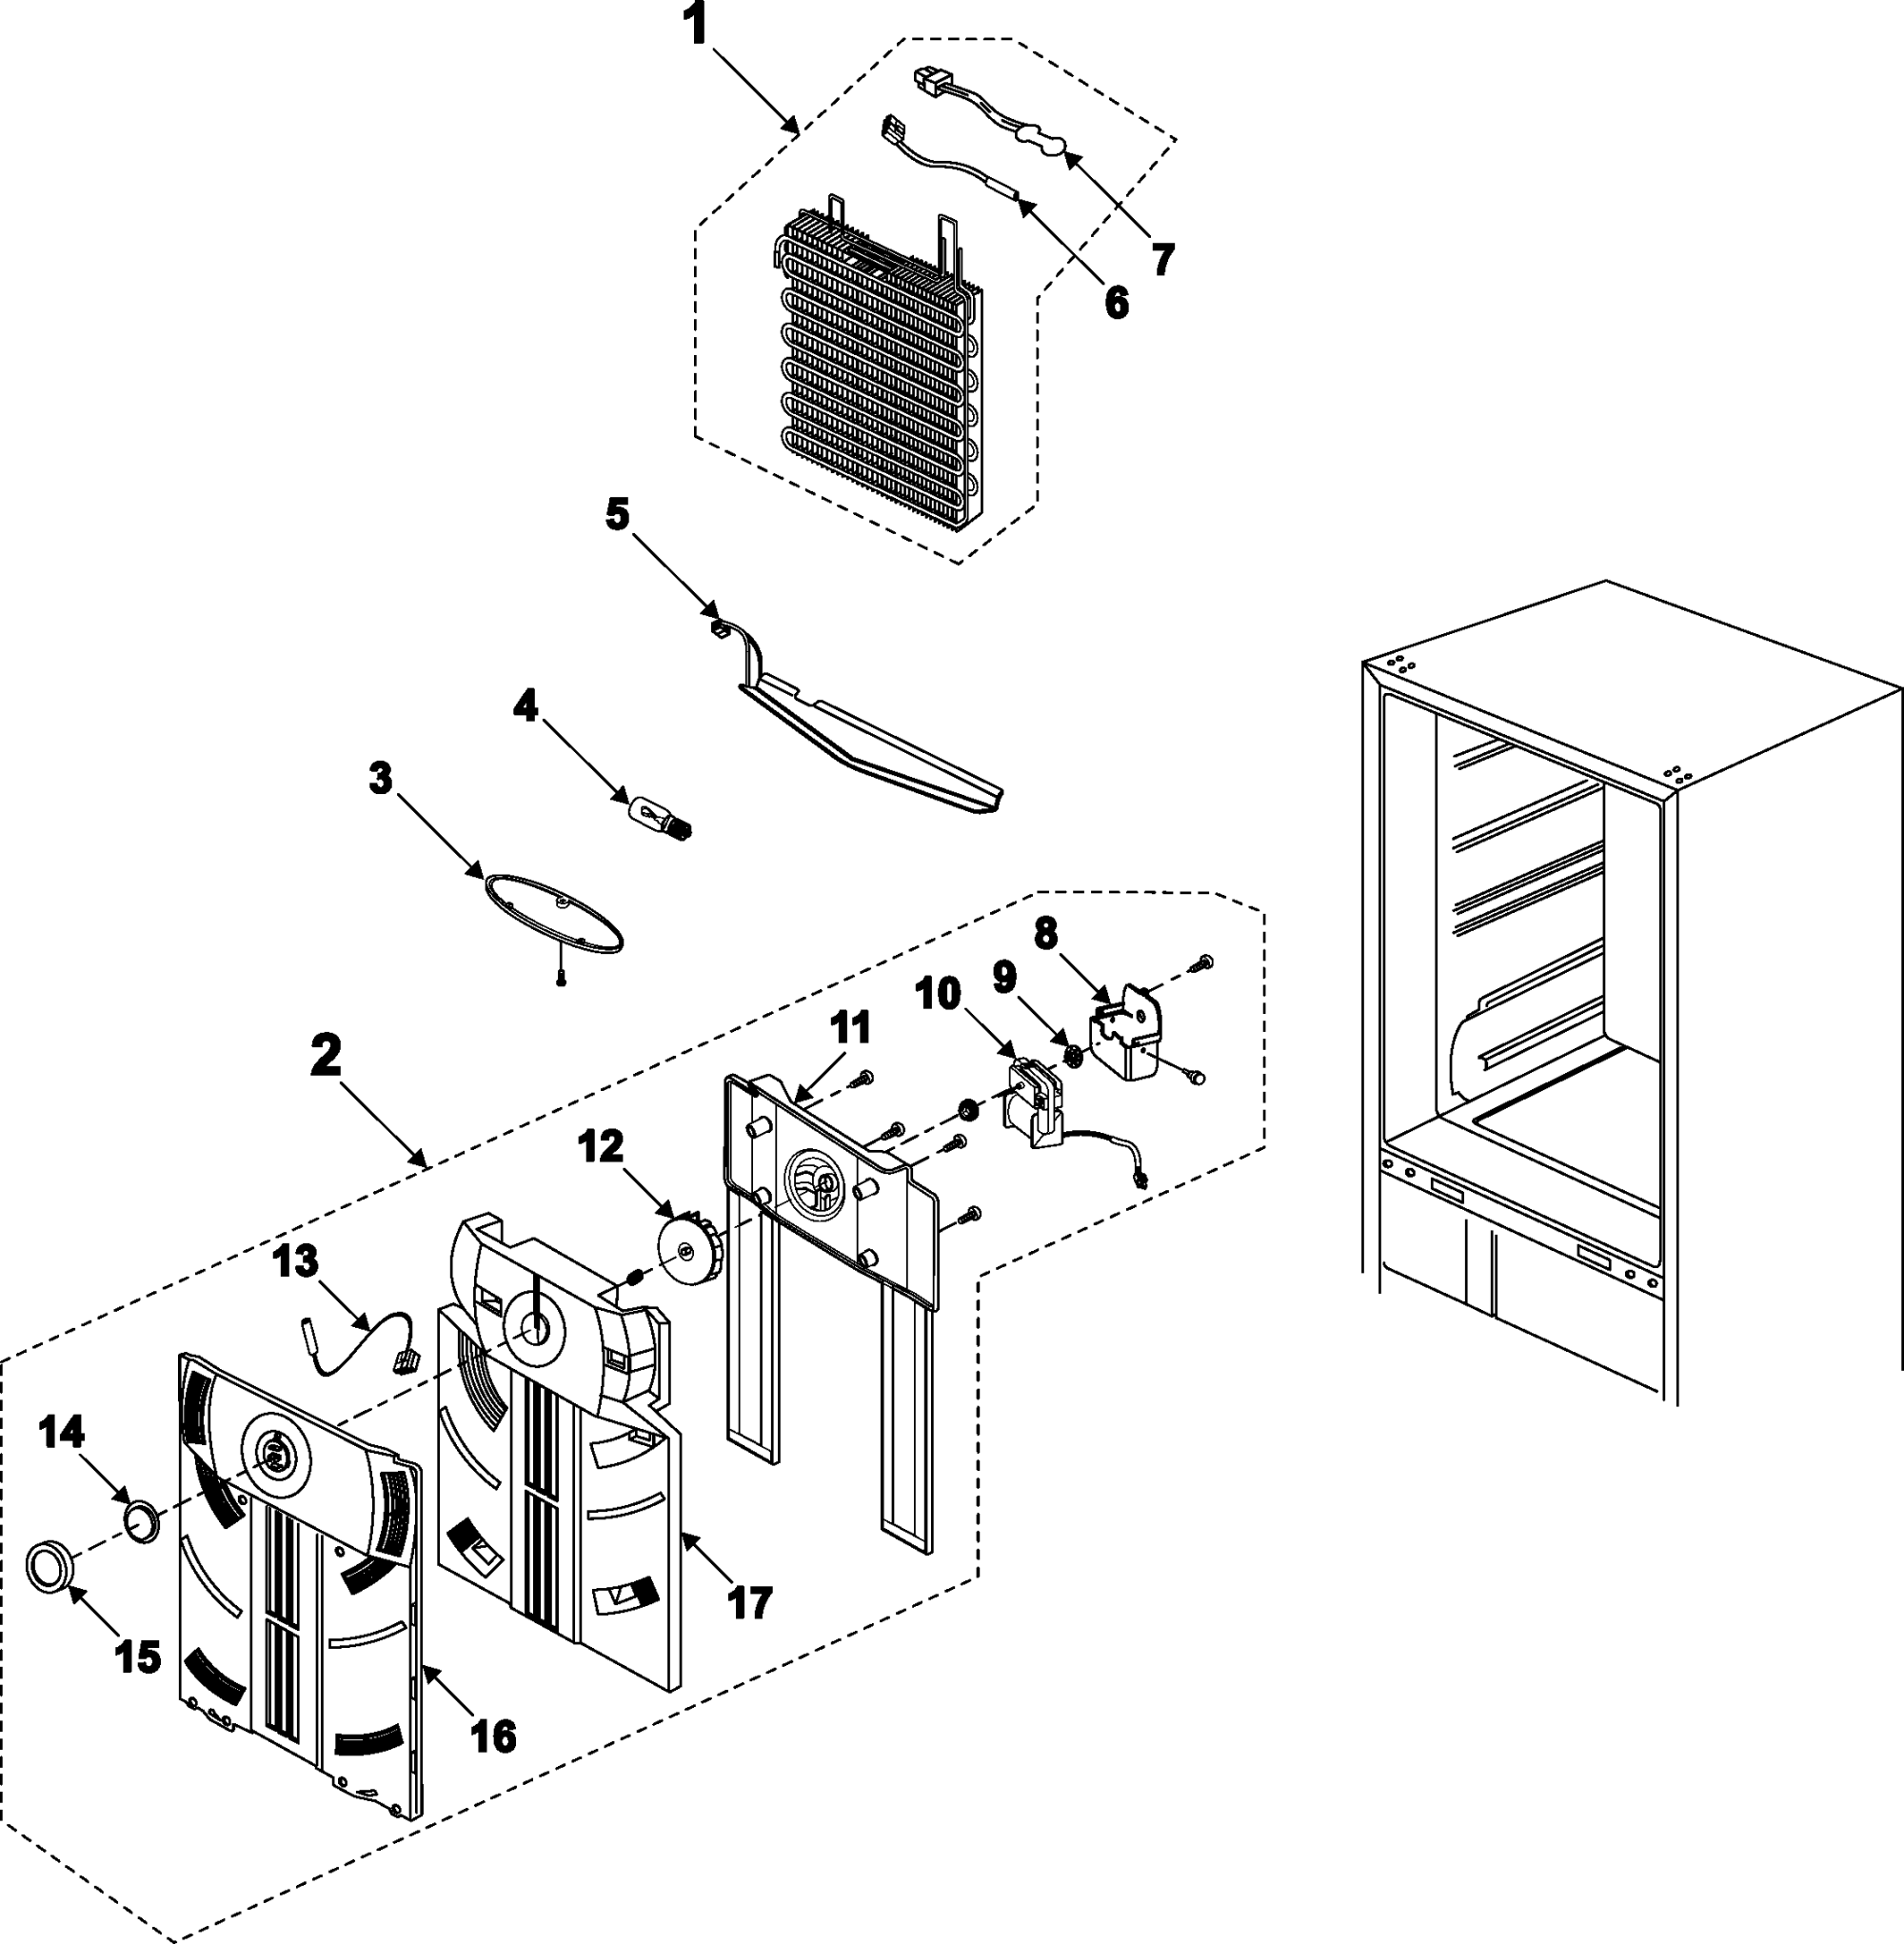 hight resolution of samsung rb195bsbb xaa 00 refrigerator compartment diagram